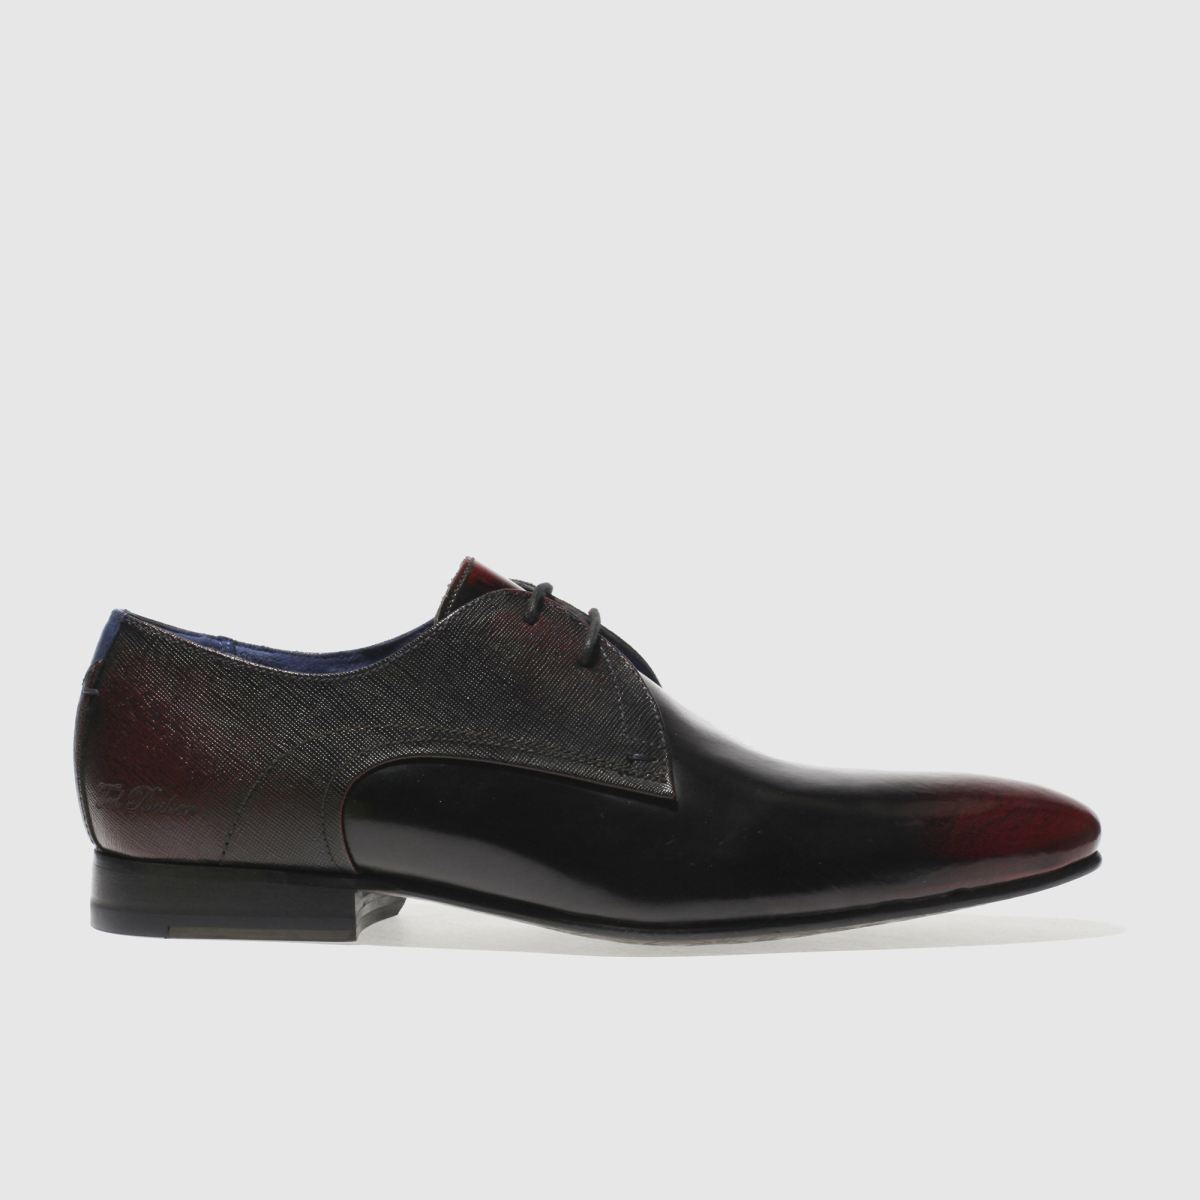 Ted Baker Burgundy Peair Shoes